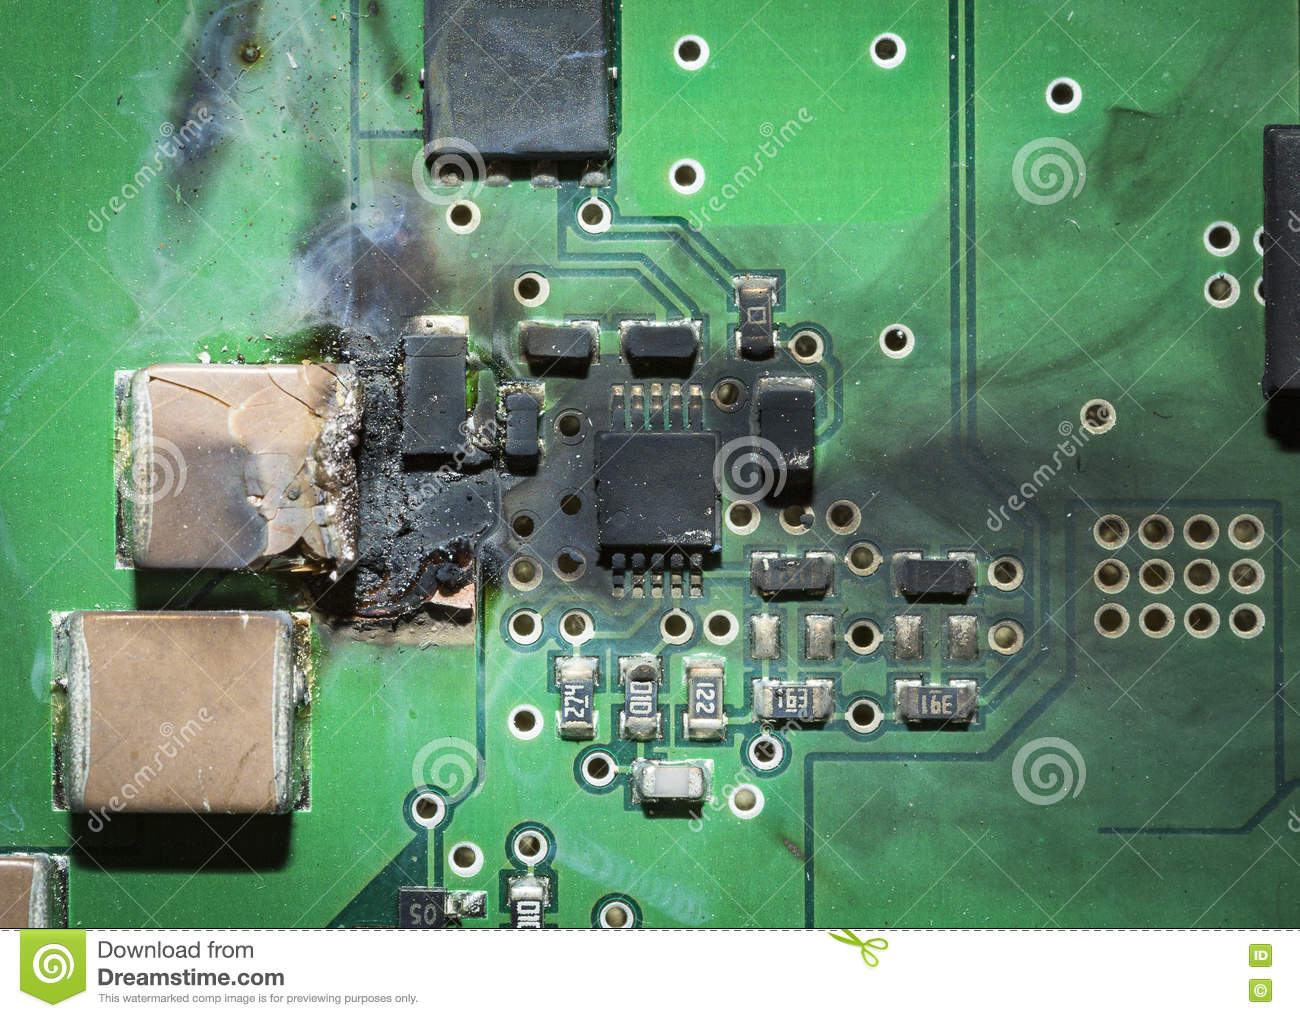 burned electronic smd printed circuit board pcb after a short rh dreamstime com  Fuse On Circuit Board